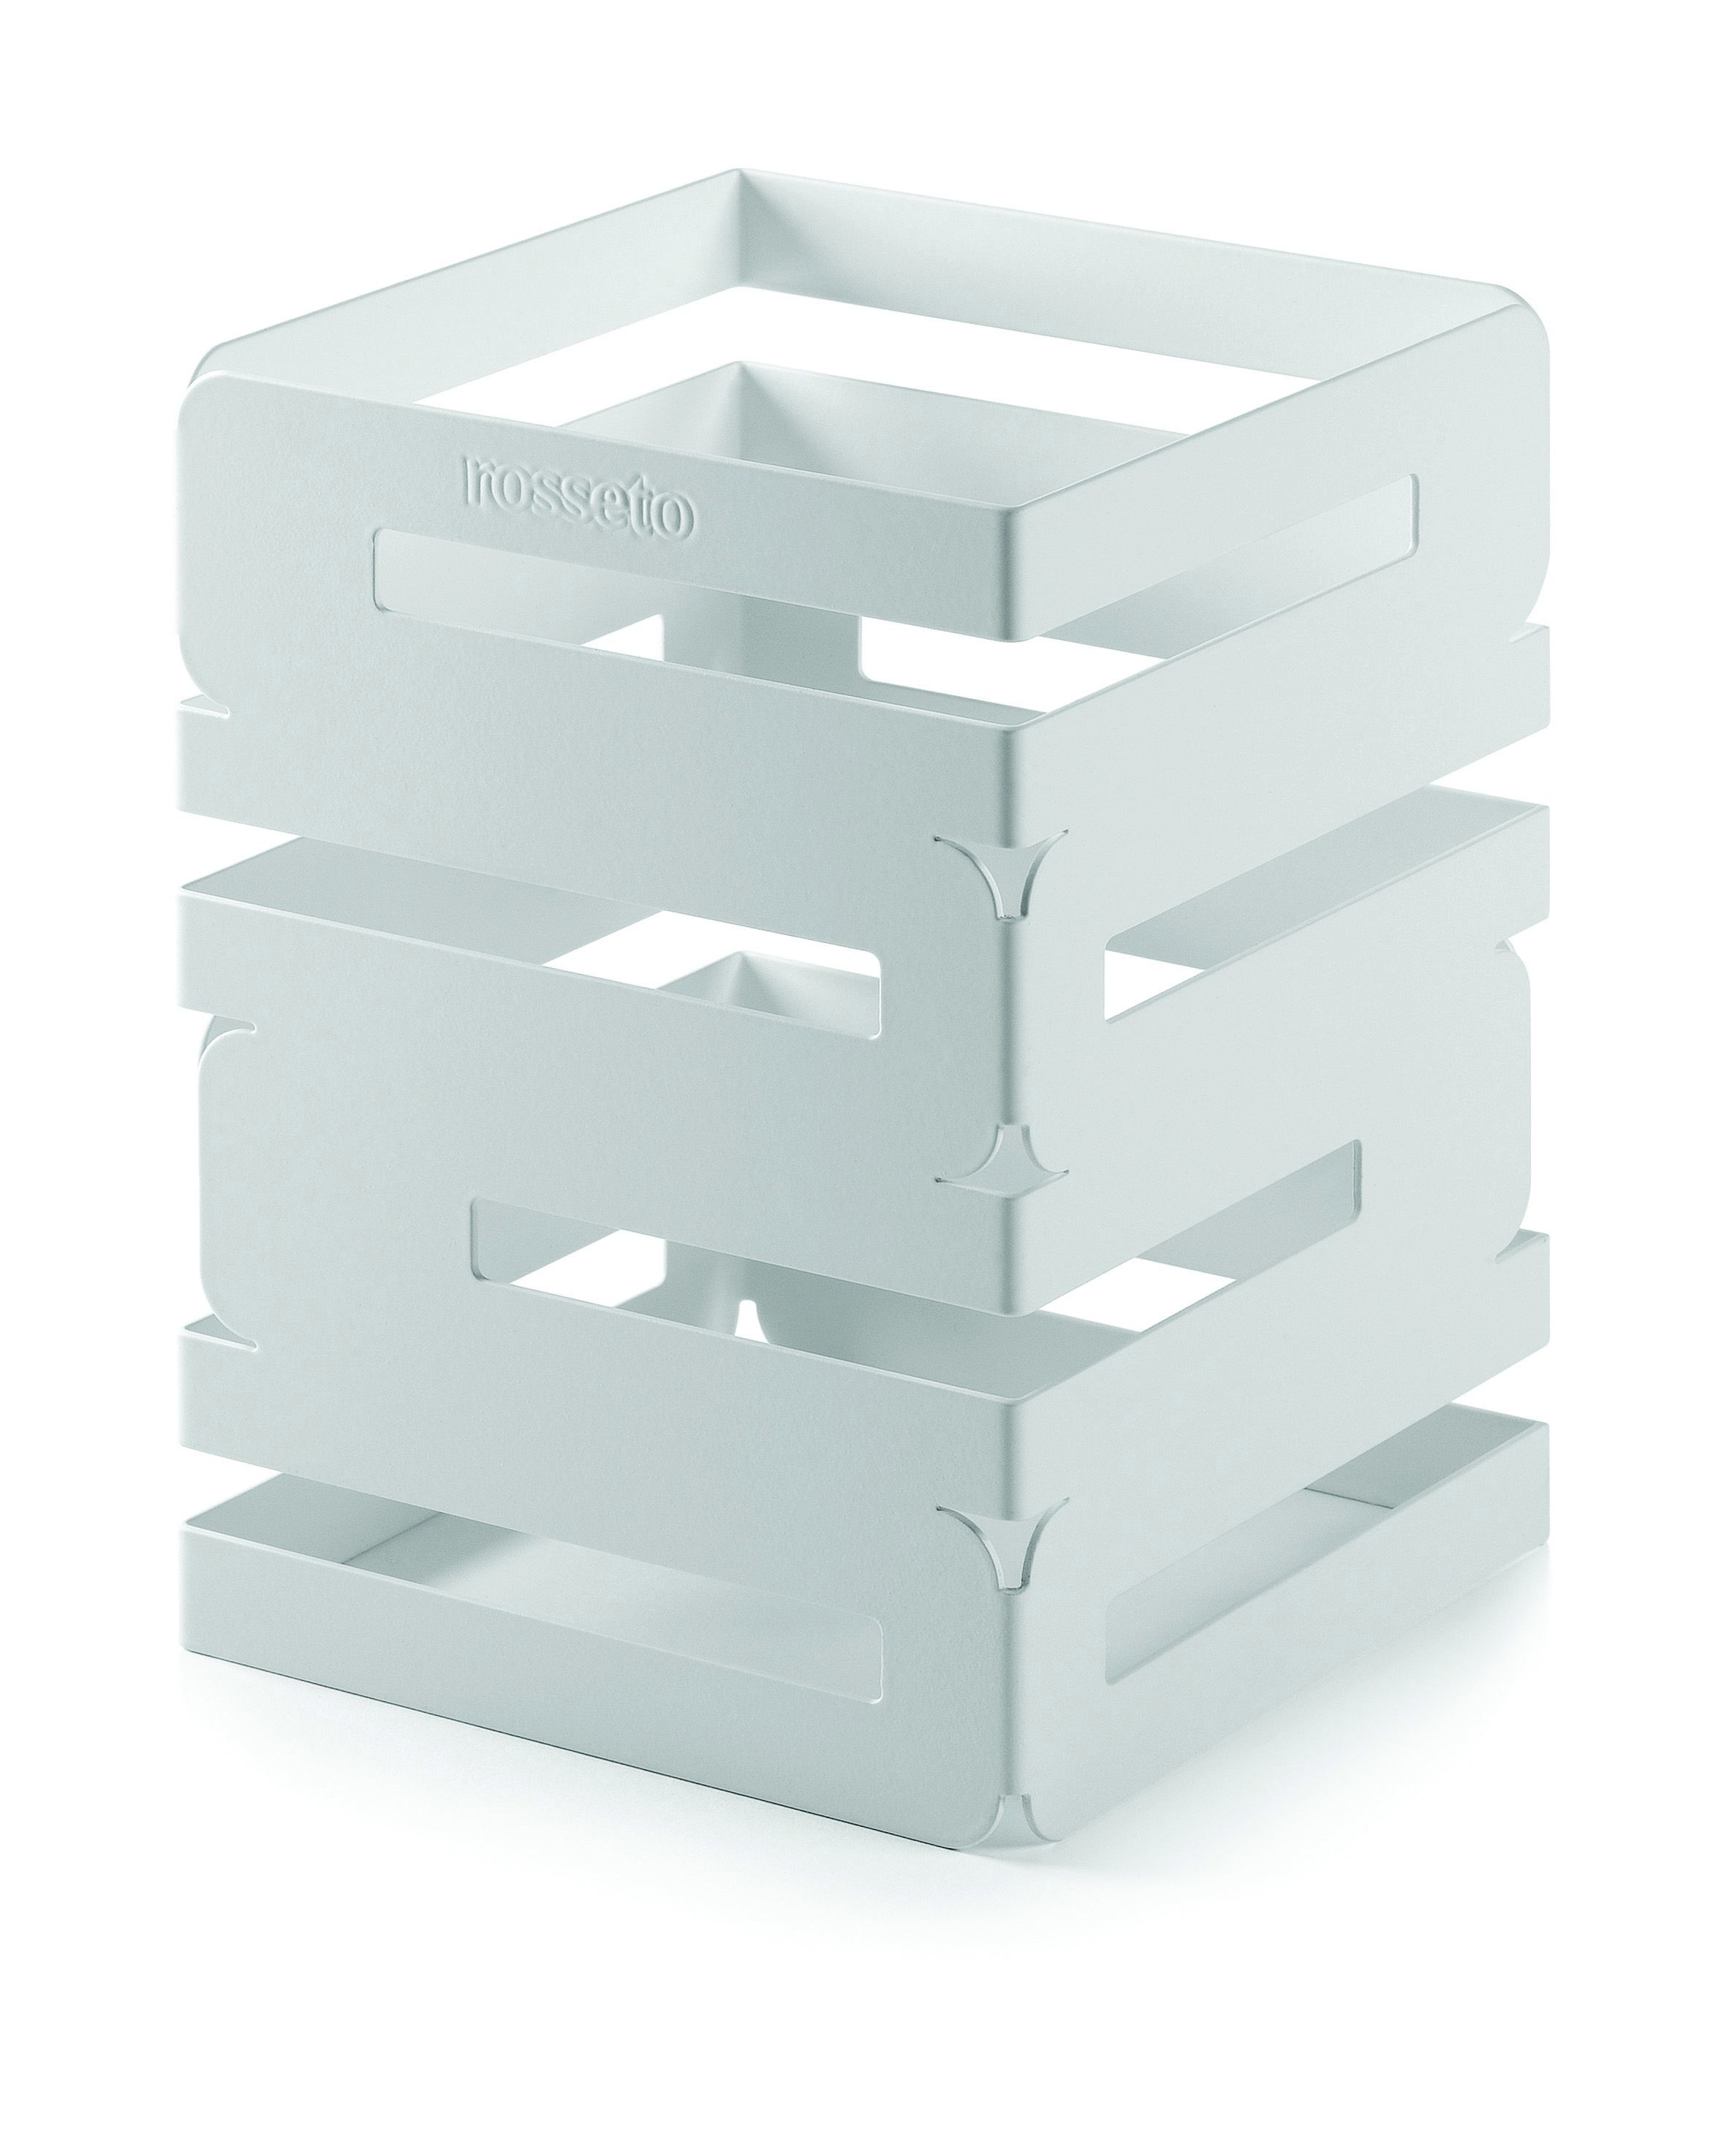 "Rosseto SM131 Skycap White Matte Steel Square Multi-Level Riser 6"" x 6"" x 8""H"